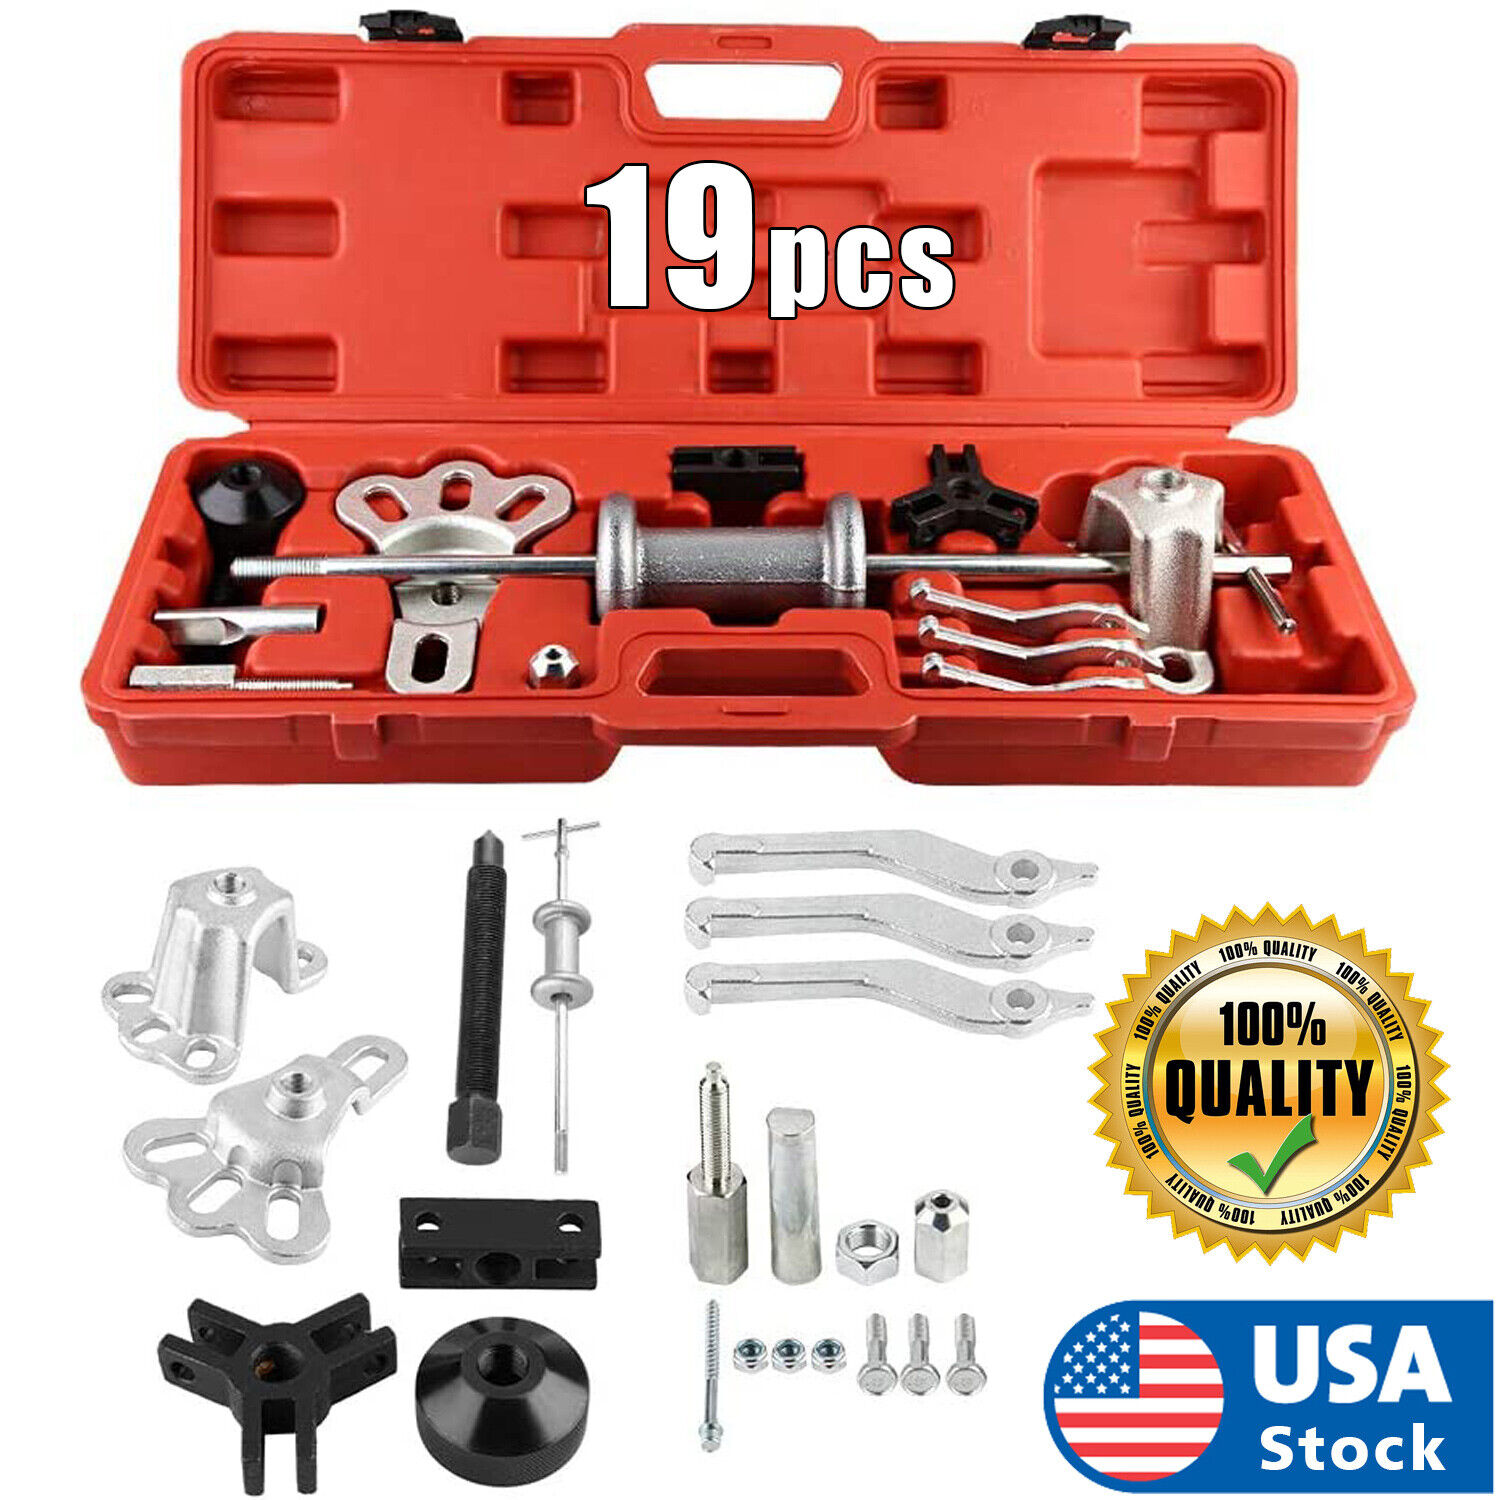 USA Slide Hammer Dent Puller Tool Kit Wrench Adapter Axle Bearing Hub Auto Set Automotive Tools & Supplies